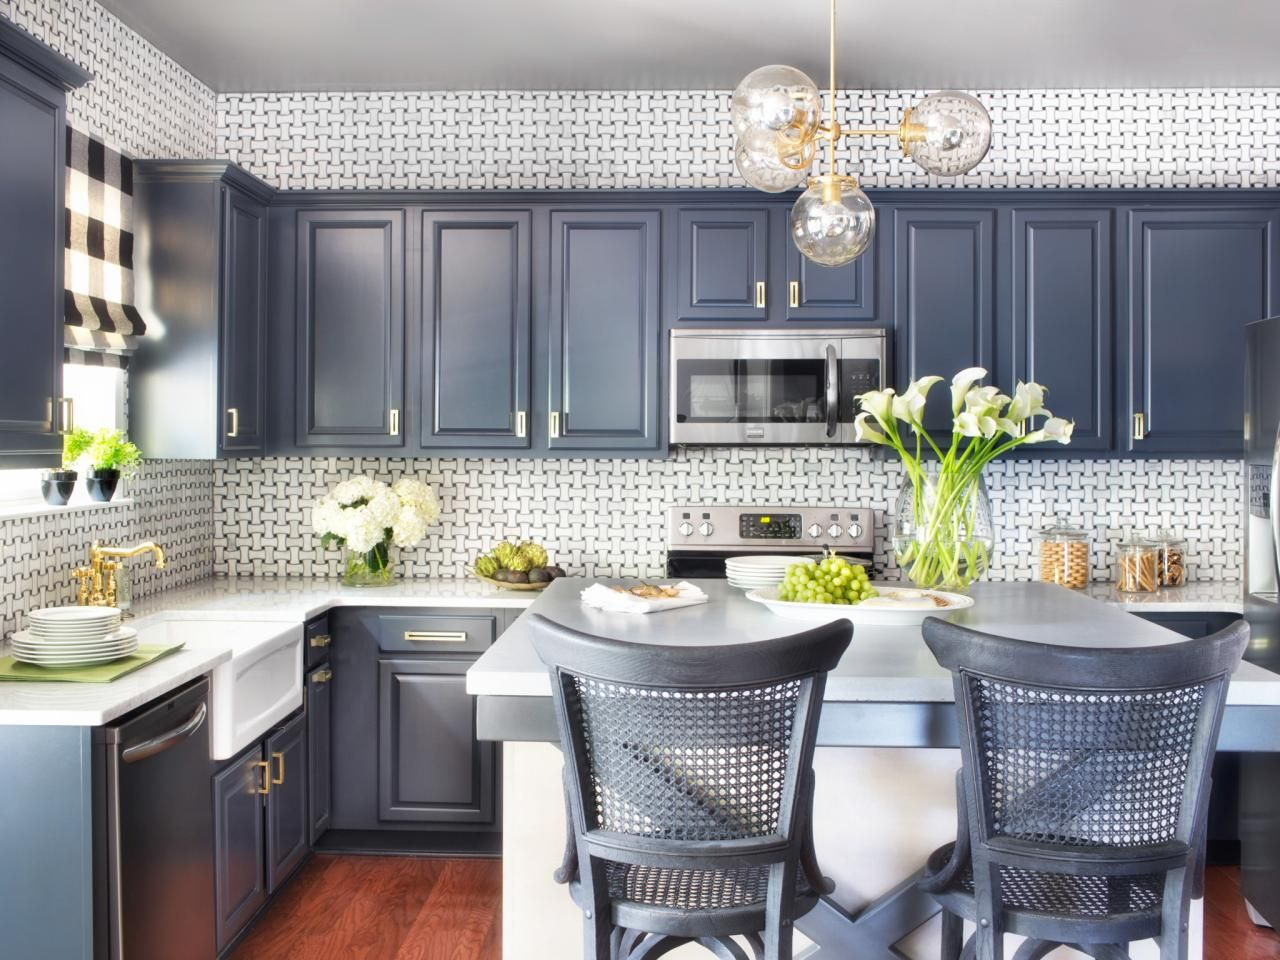 Spray Painting Kitchen Cabinets Pictures Ideas From Modern